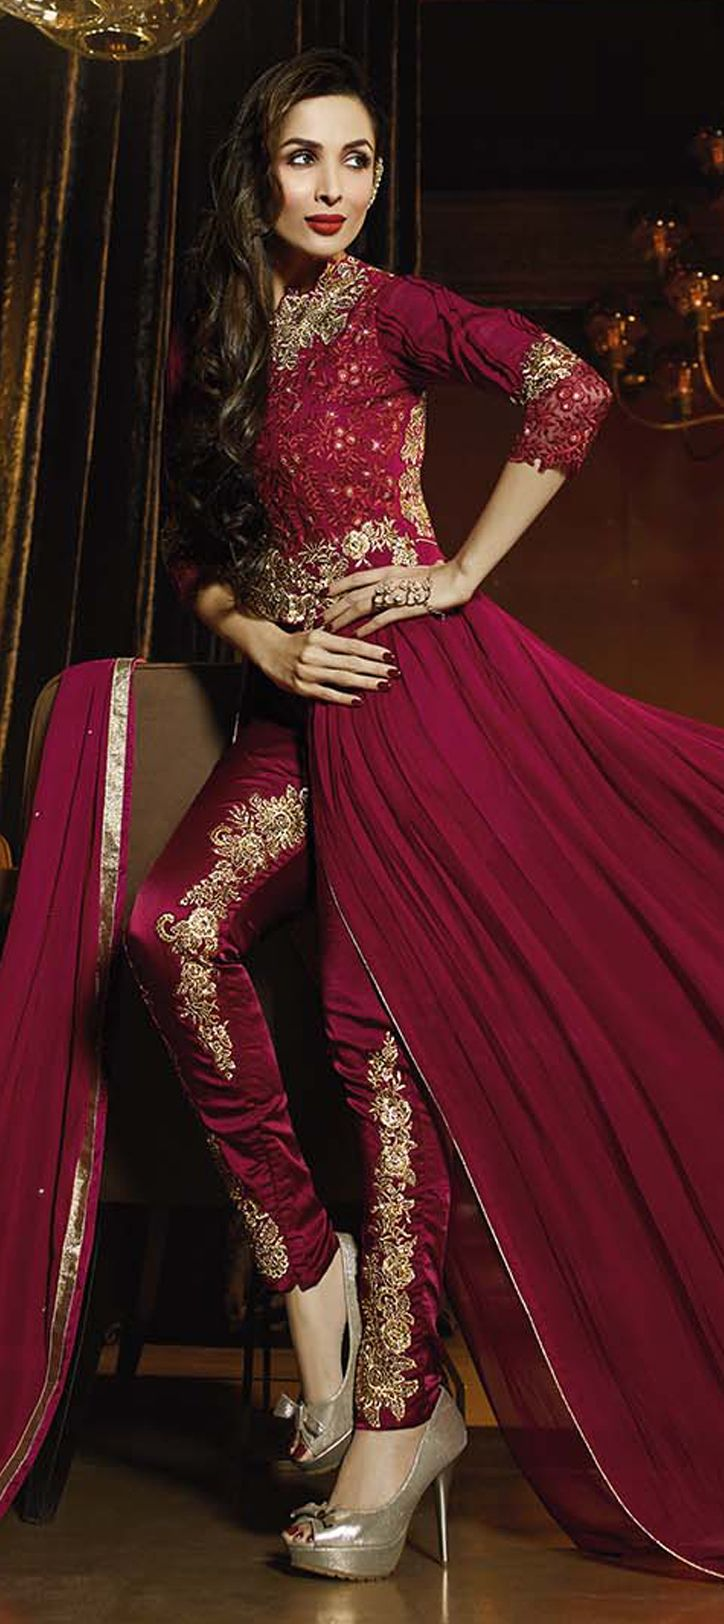 458324: Red and Maroon color family stitched Bollywood Salwar Kameez .